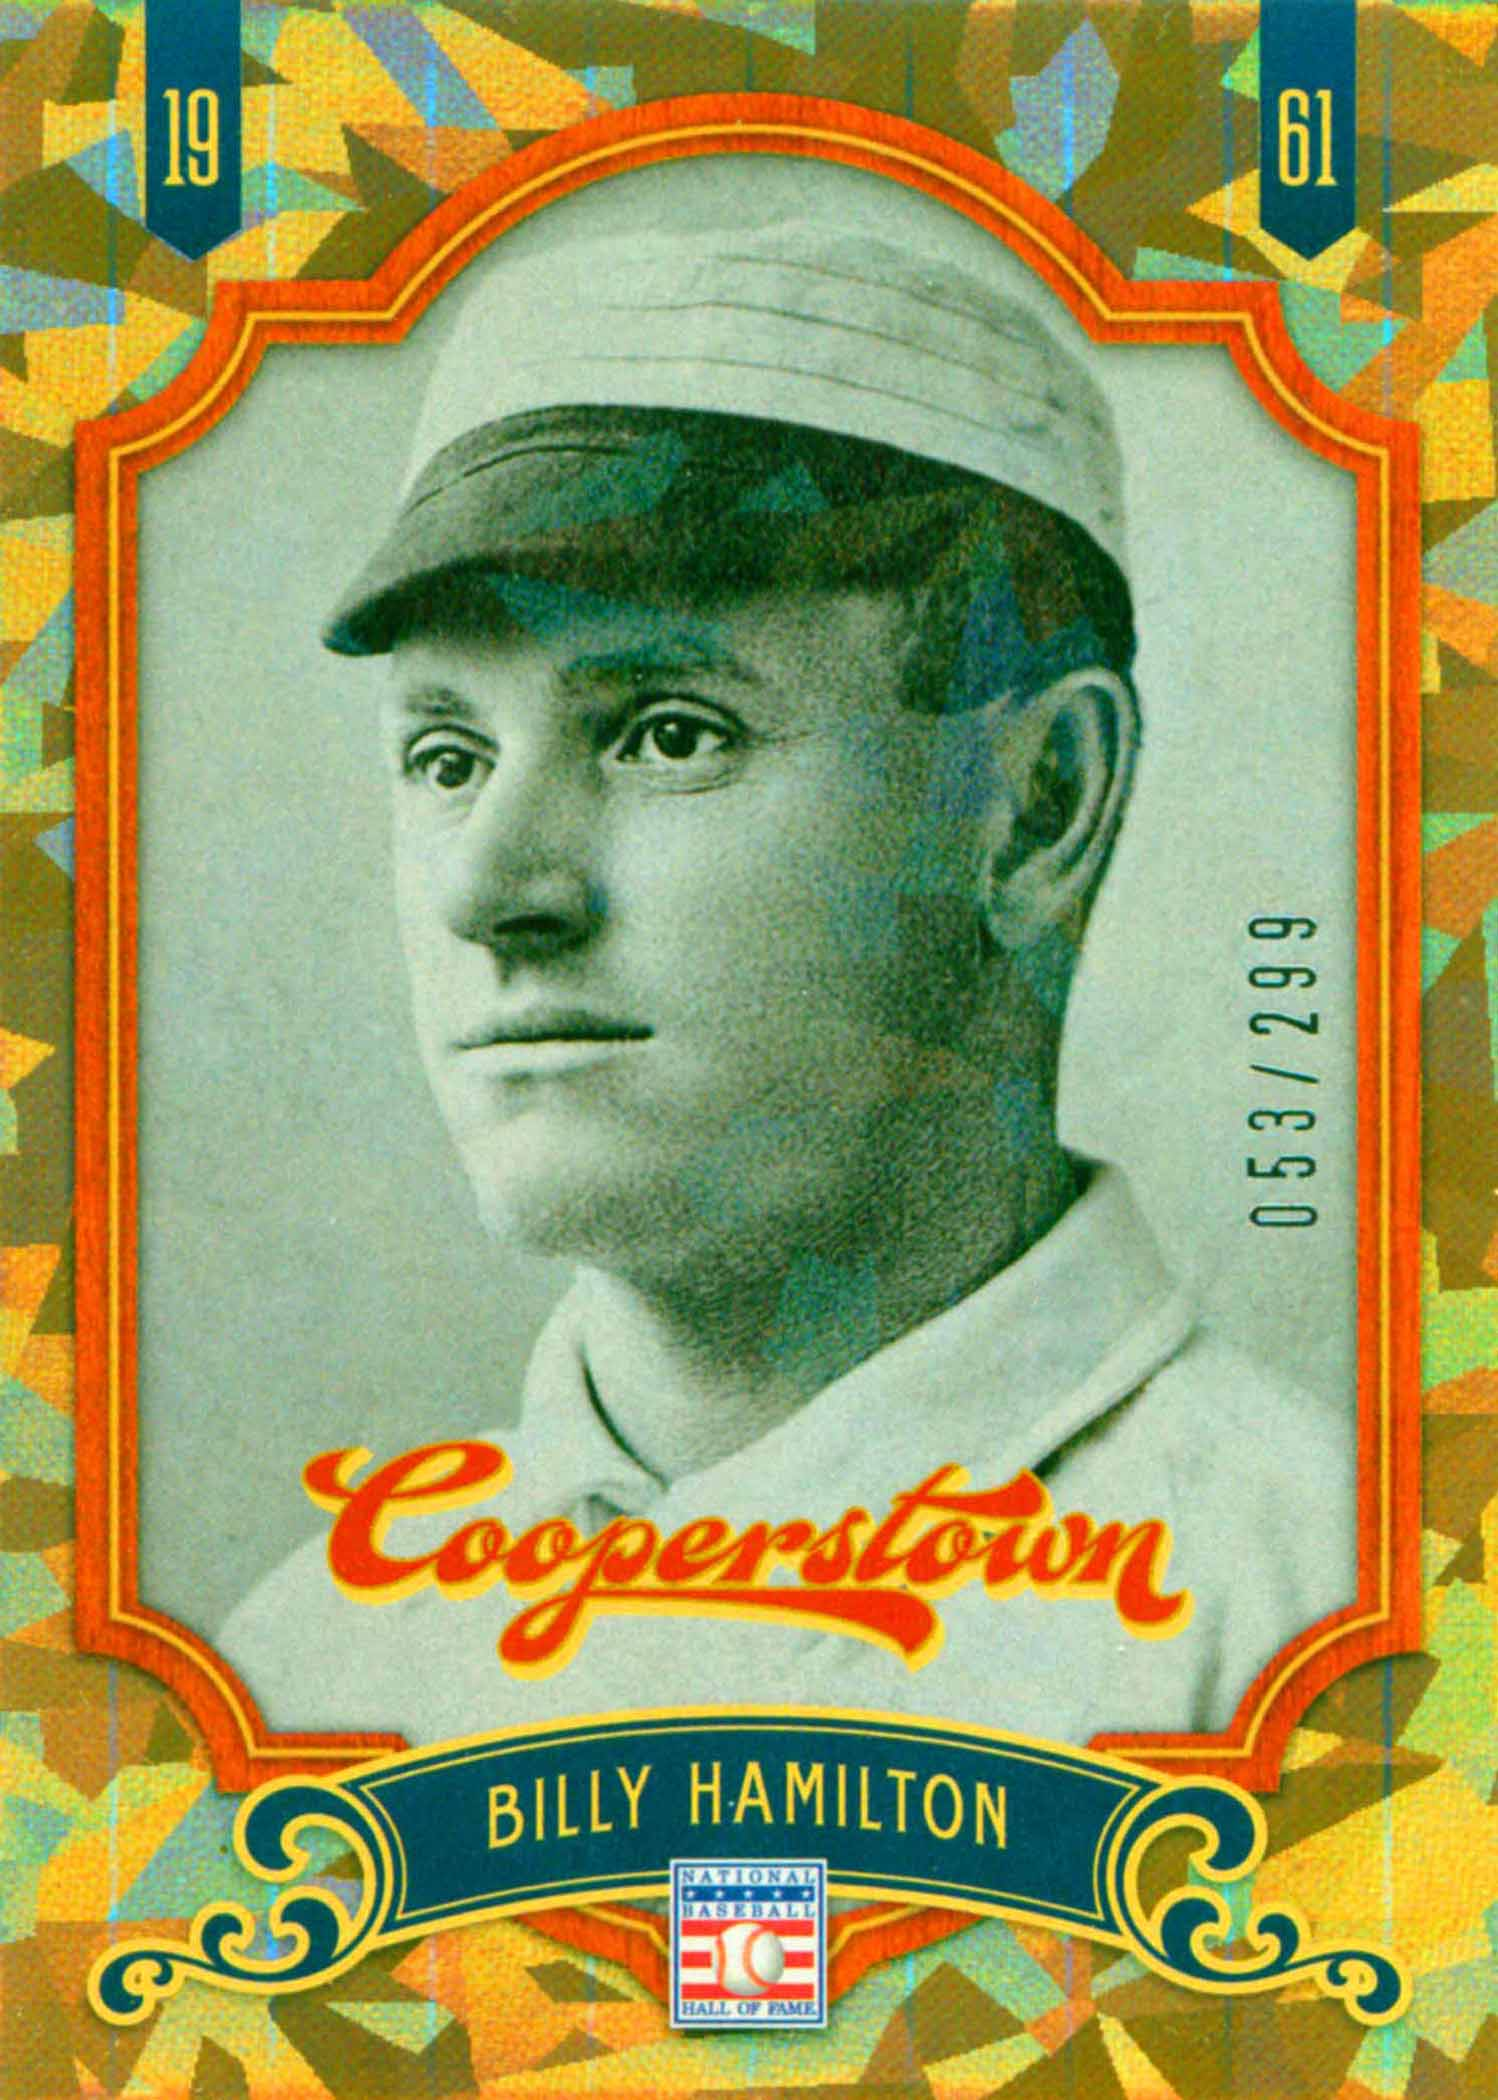 2012 Panini Cooperstown Crystal Collection